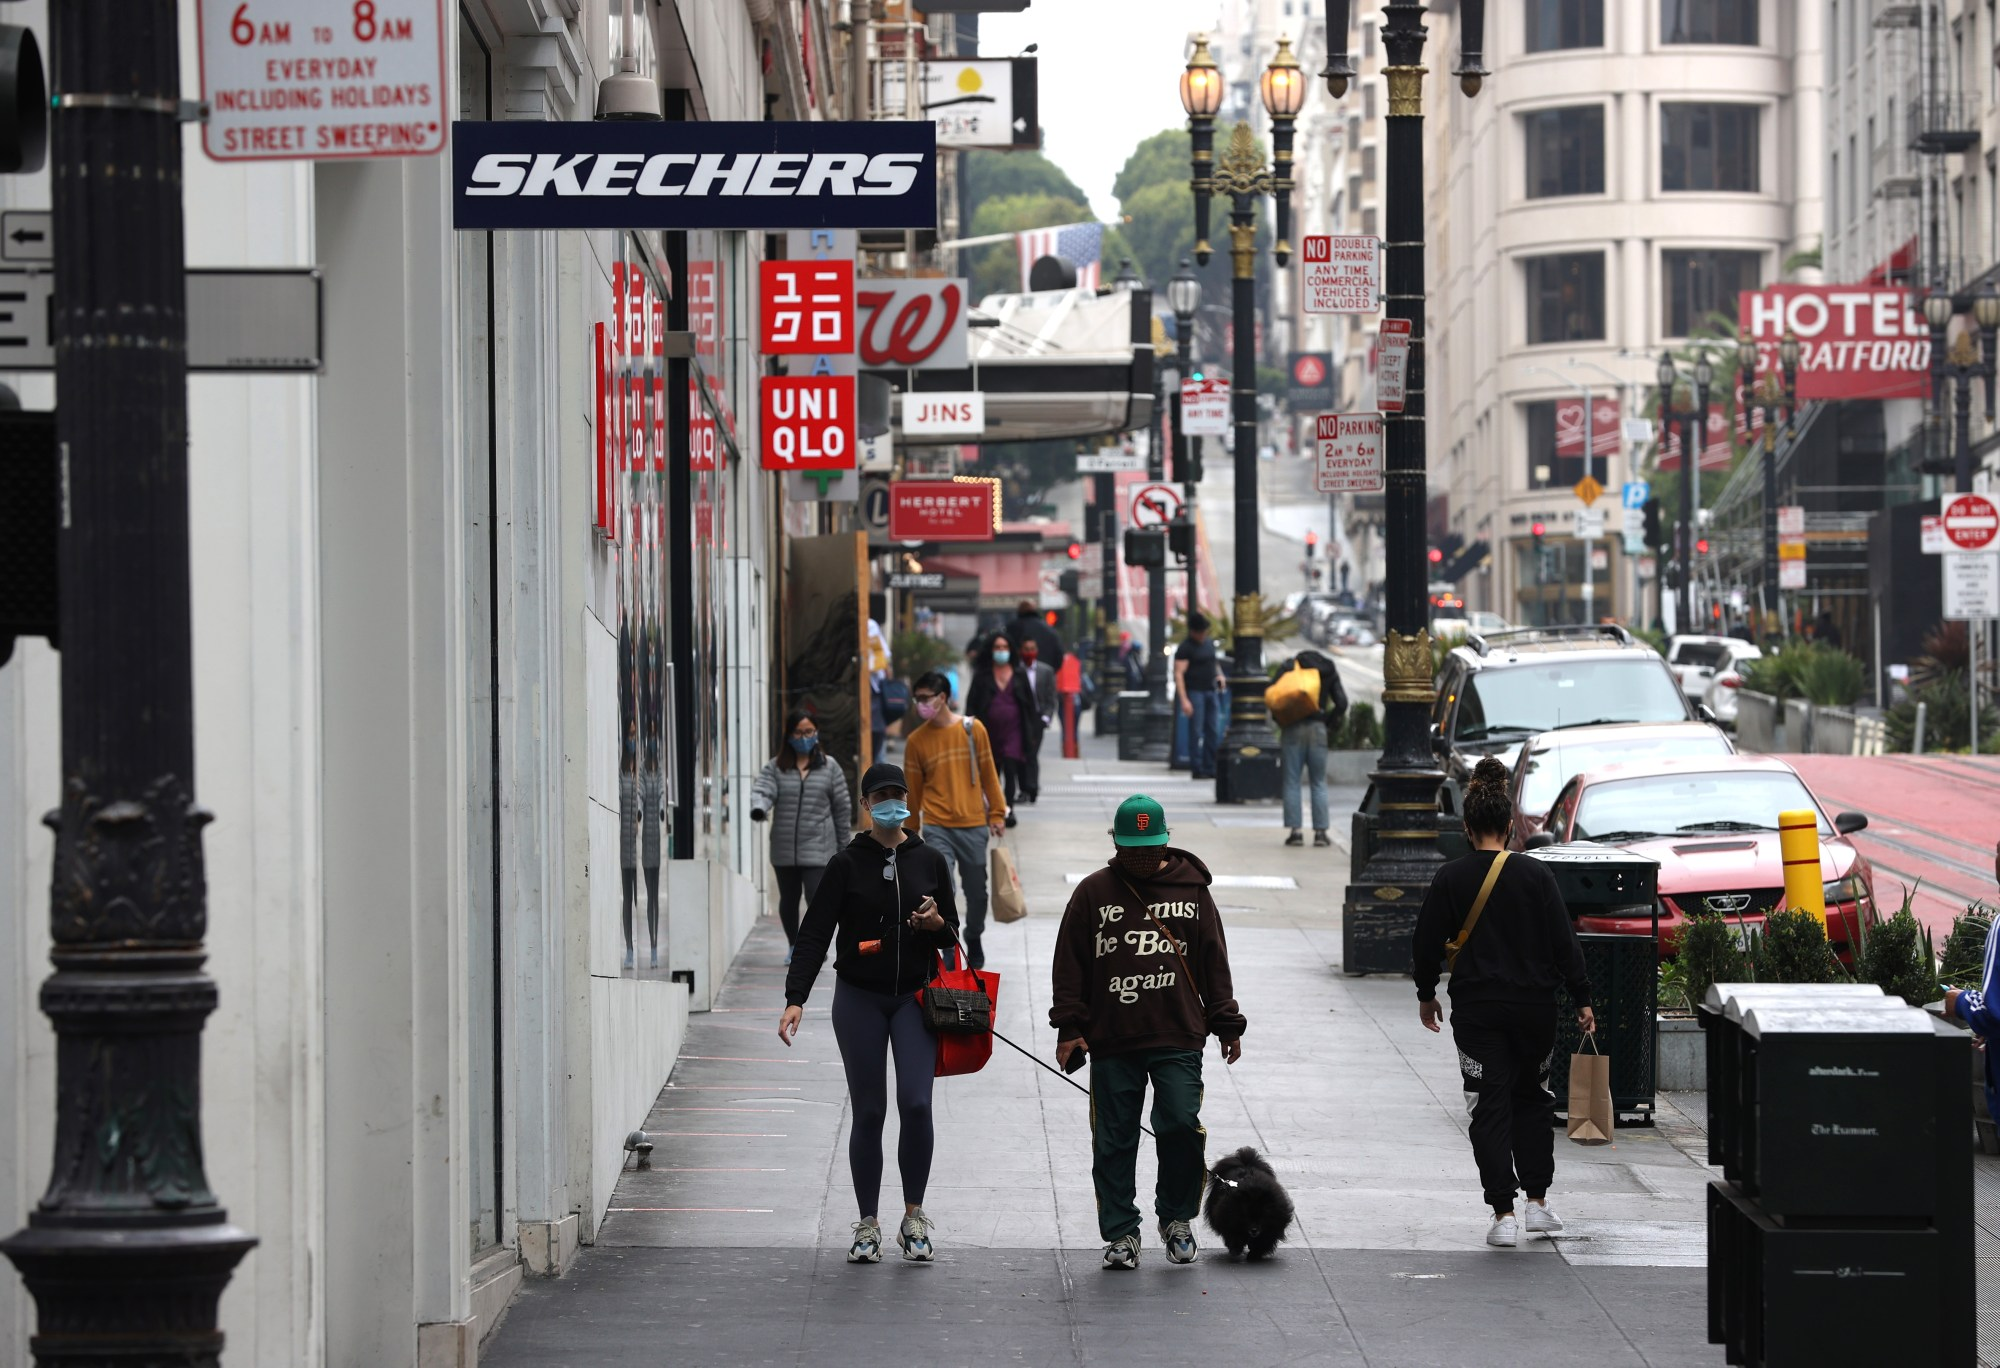 People walk through San Francisco's Union Square shopping district on Sept. 3, 2020. (Justin Sullivan/Getty Images)